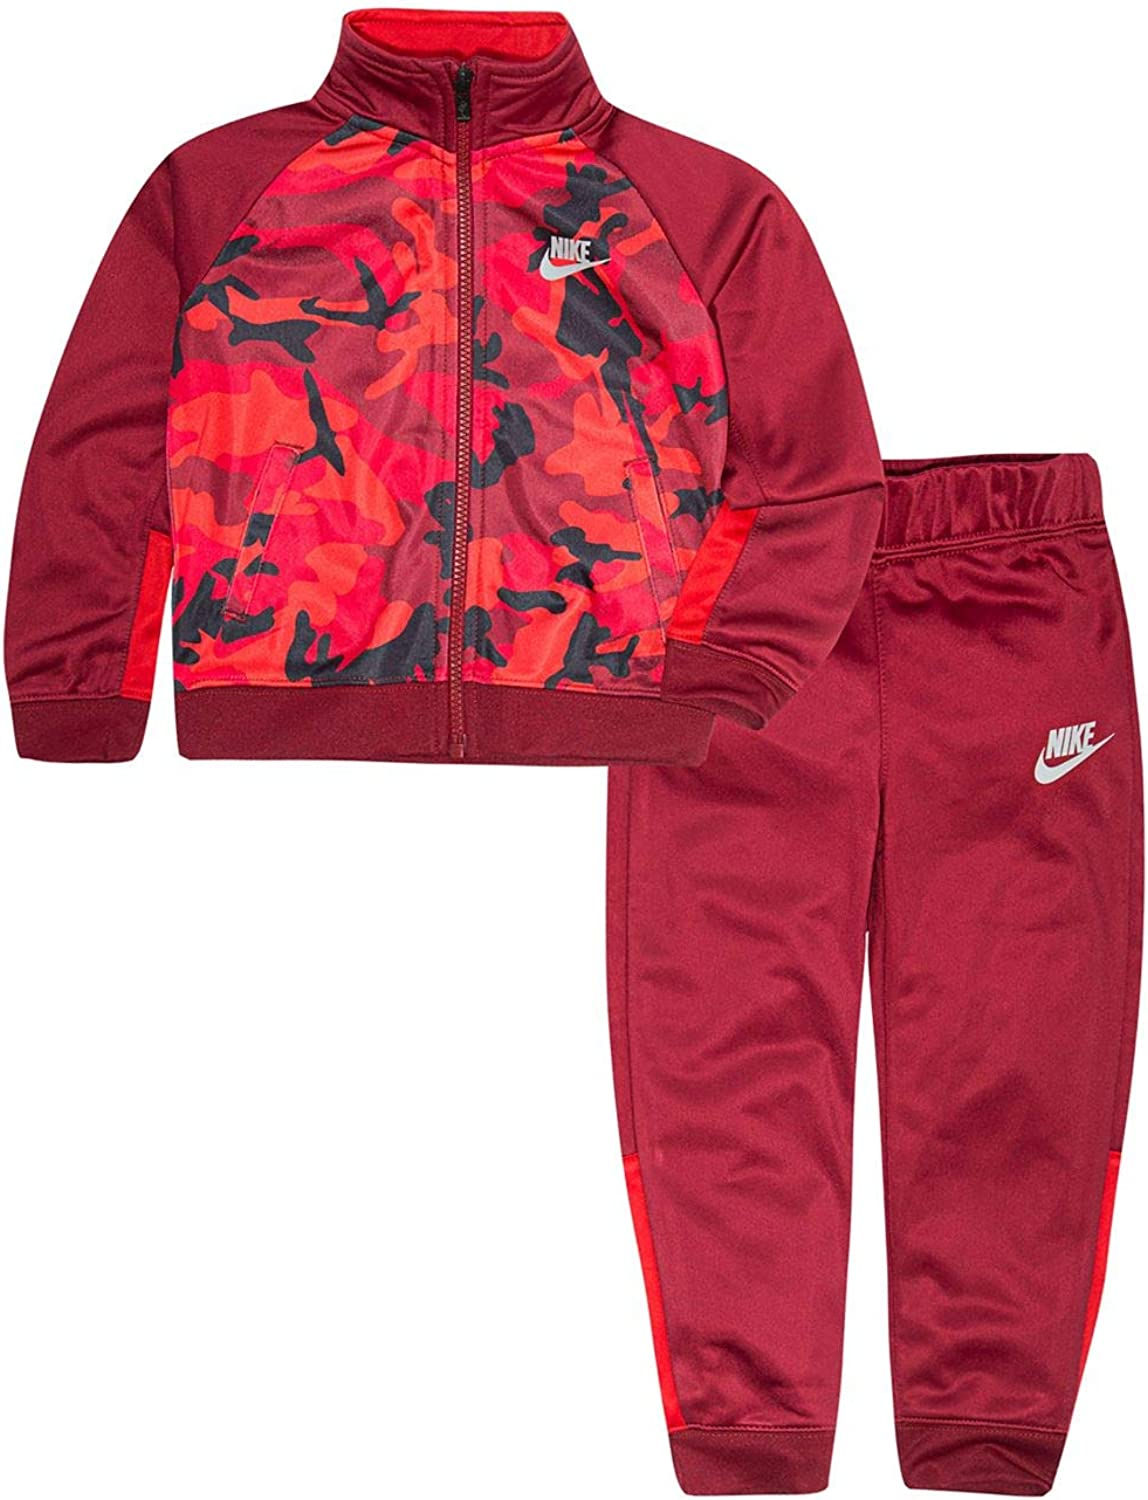 Nike Boys' Don't miss the campaign Tracksuit Manufacturer direct delivery 2-Piece